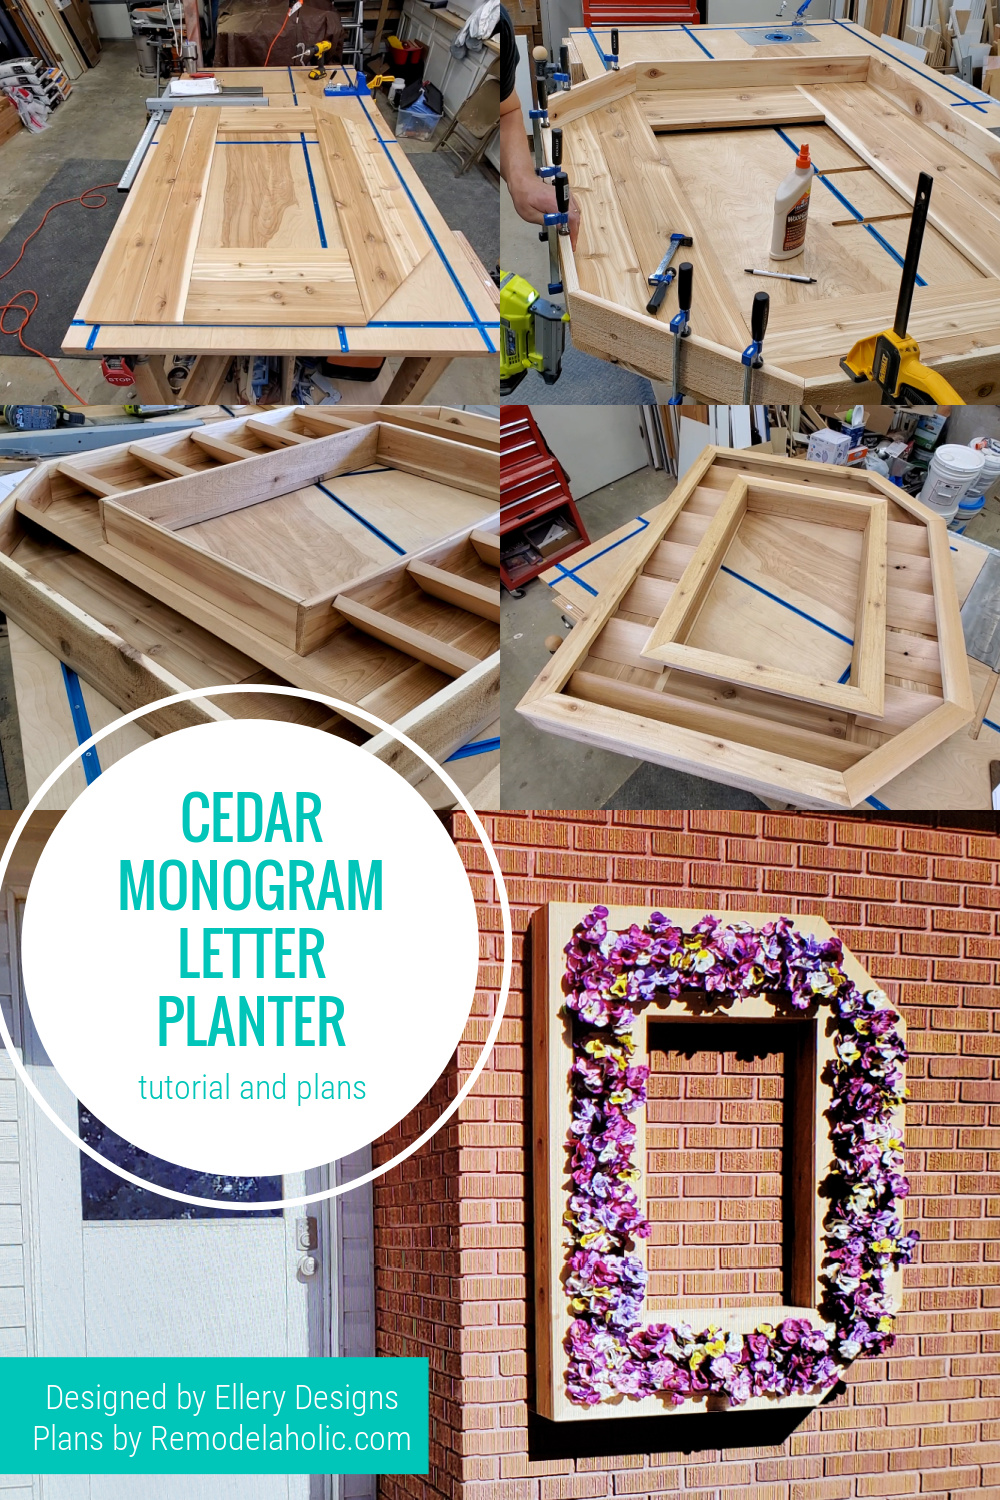 Large Outdoor Cedar Monogram Letter Planter Plans, Remodelaholic